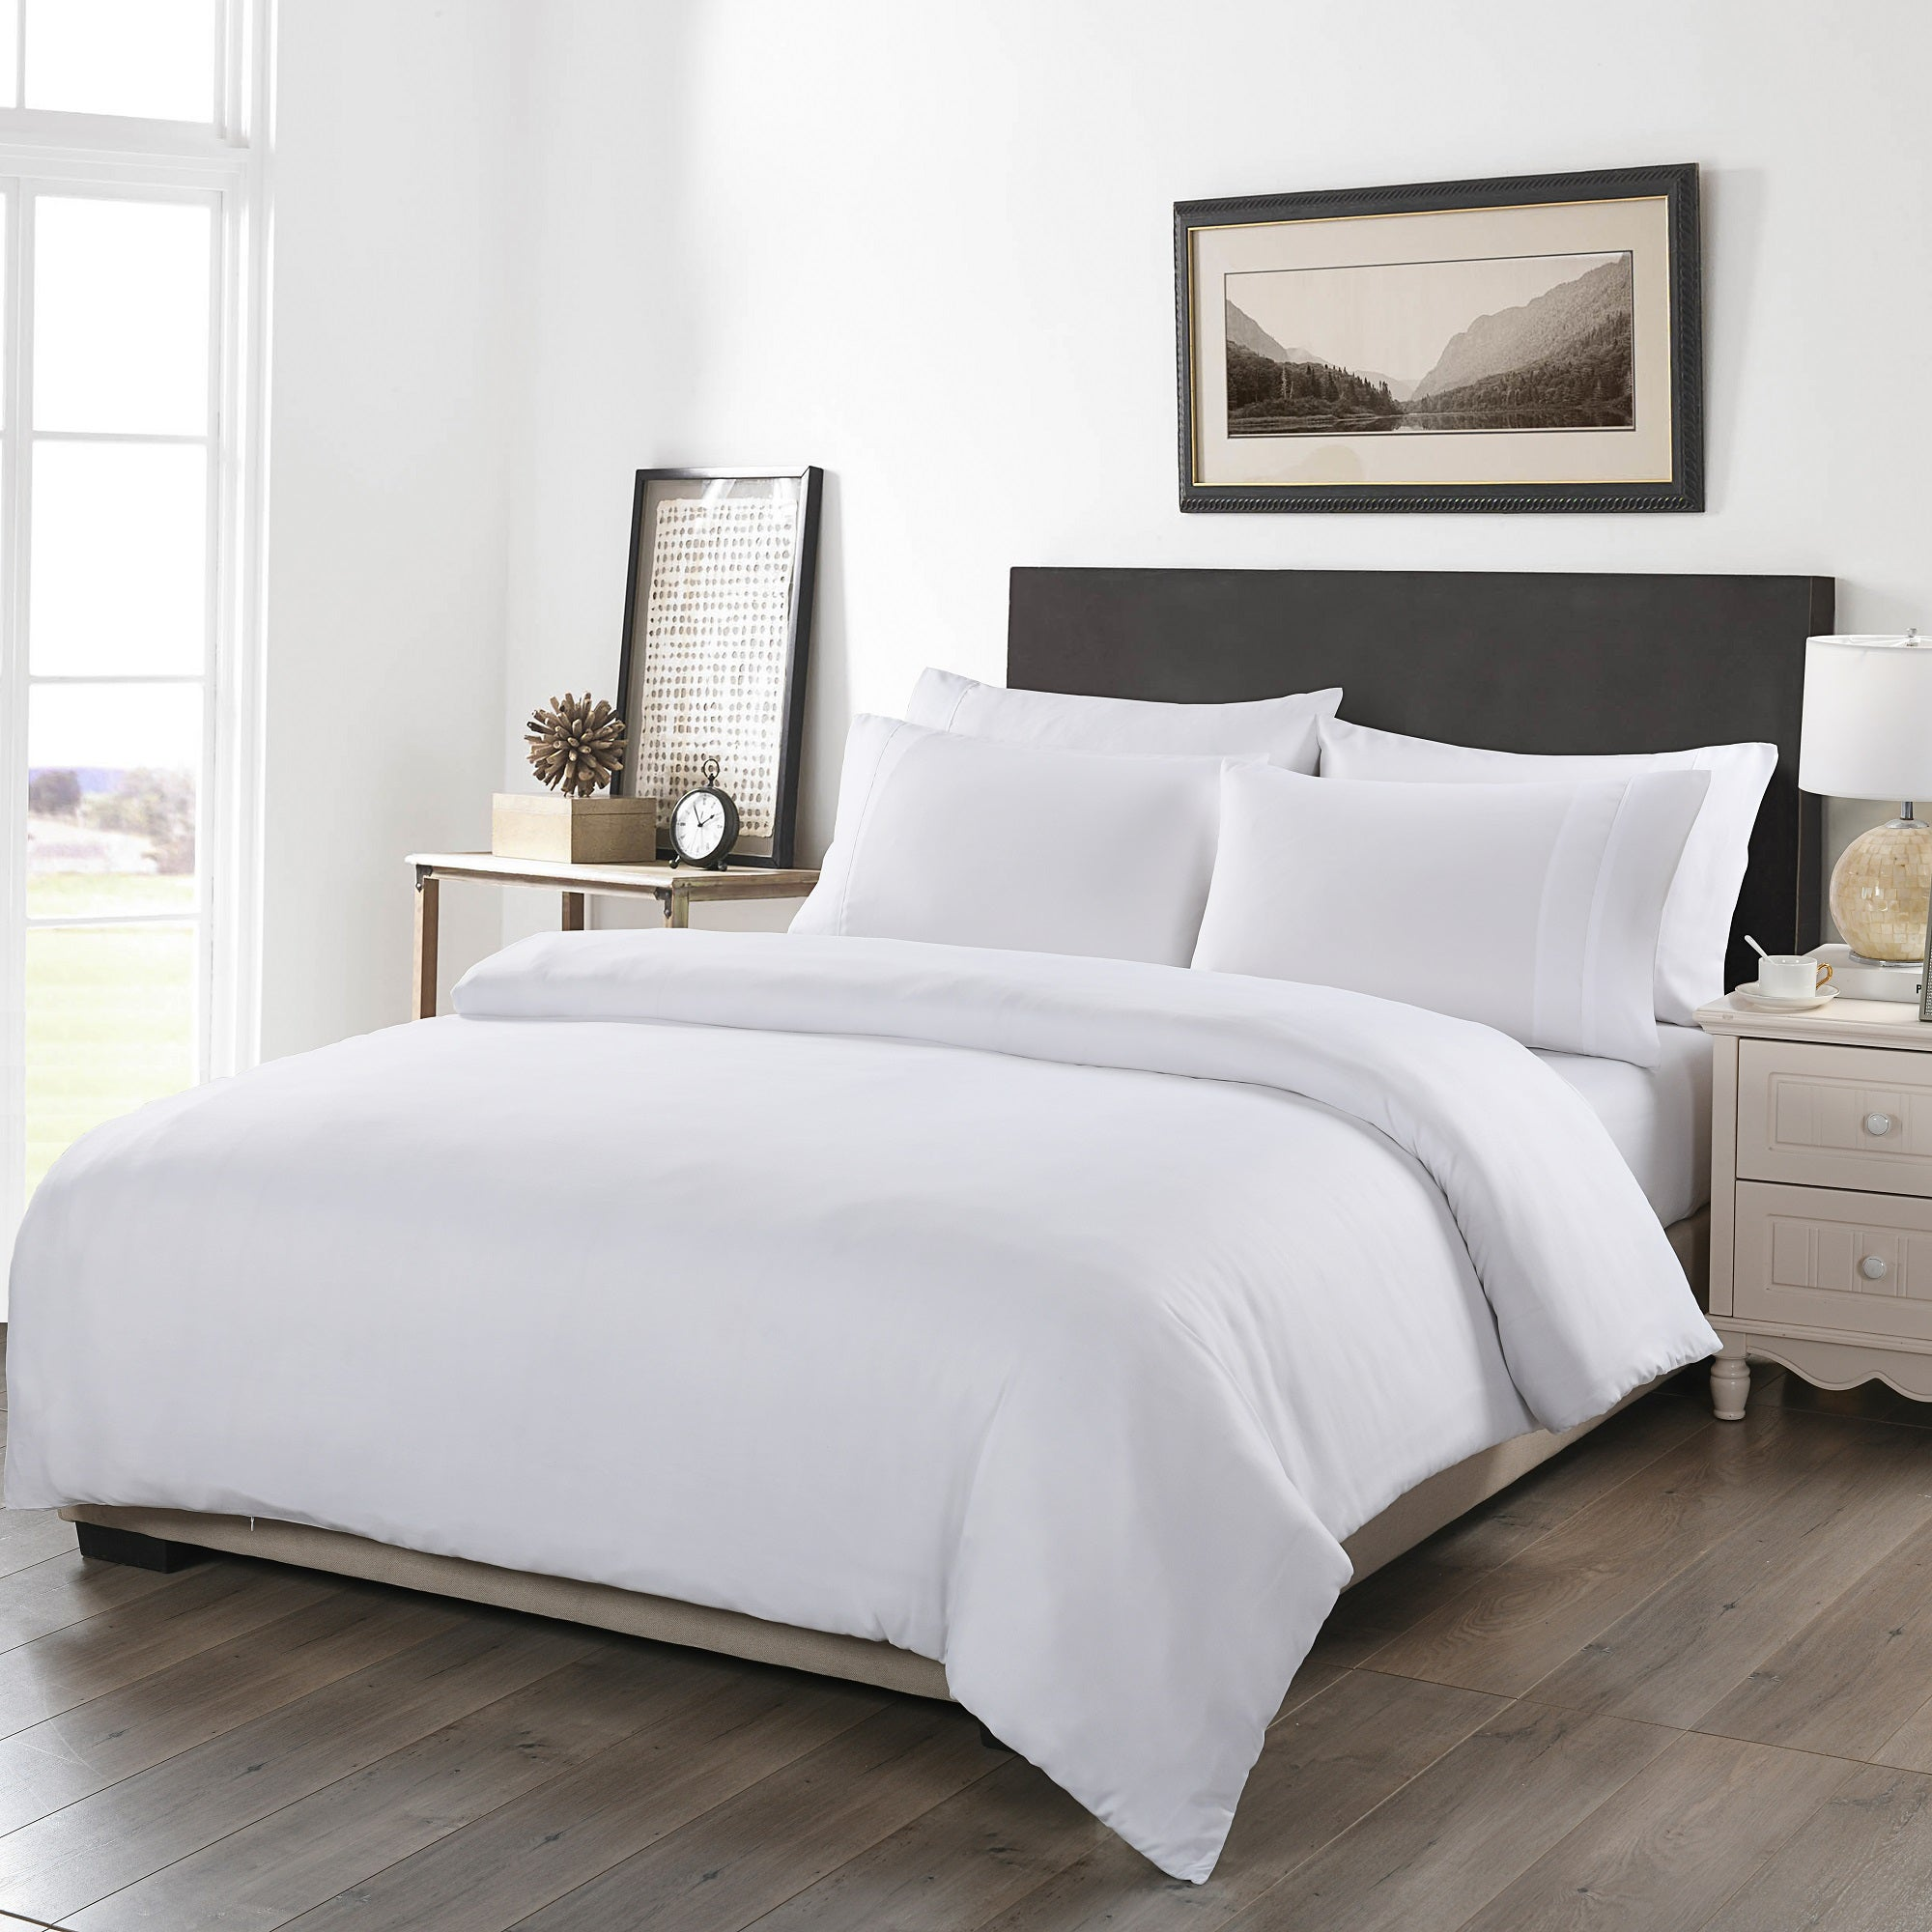 Royal Comfort 1200TC 6 Piece Fitted Sheet Quilt Cover & Pillowcase Set UltraSoft